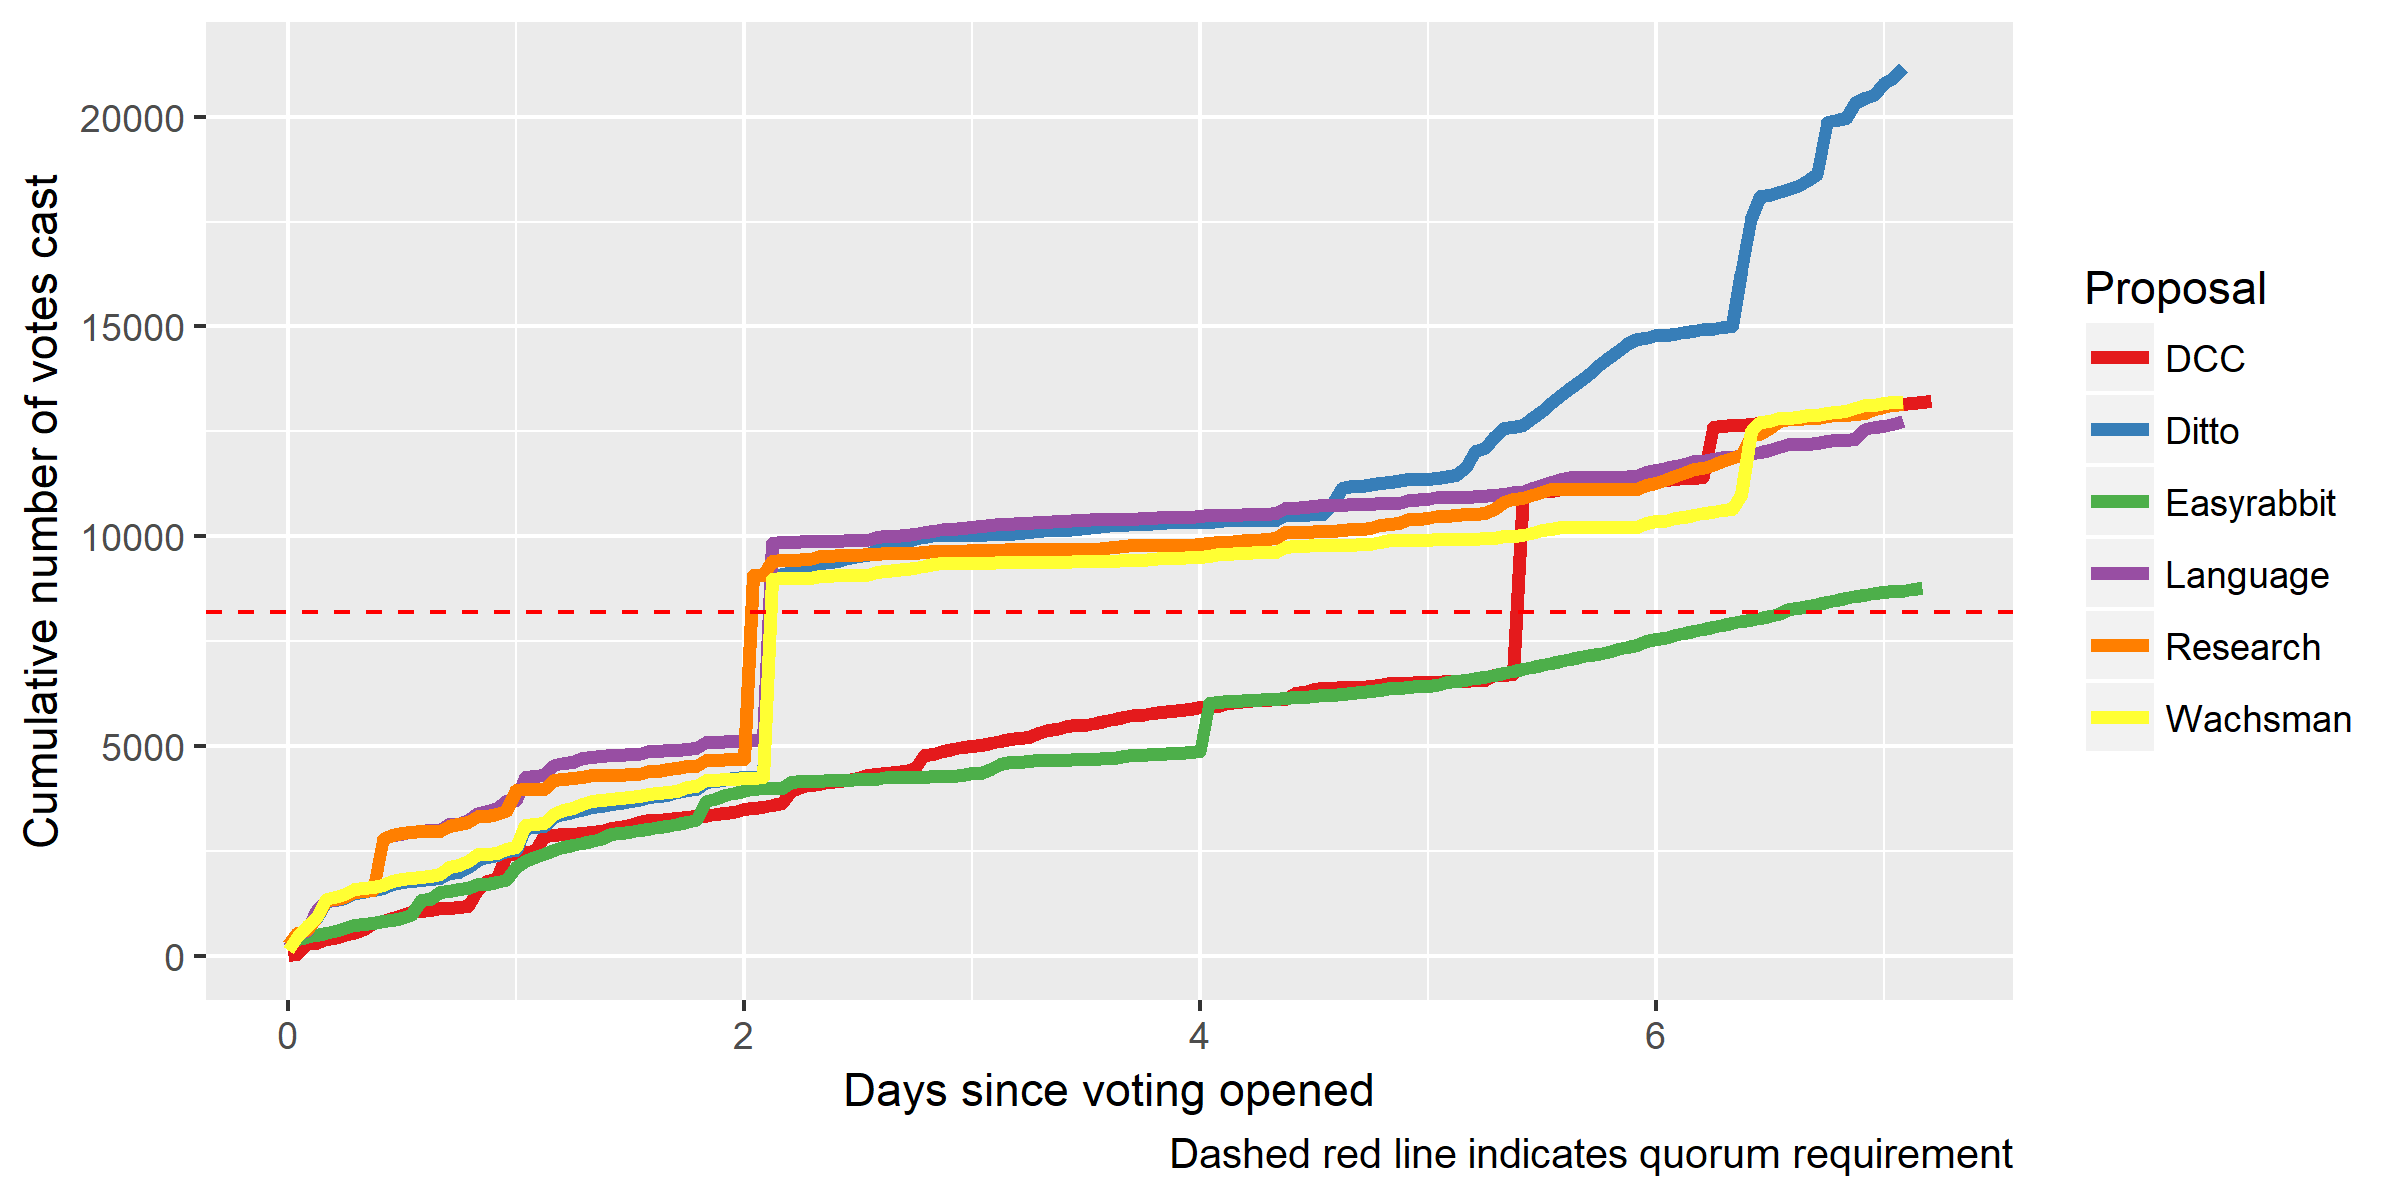 Proposal ticket votes over time